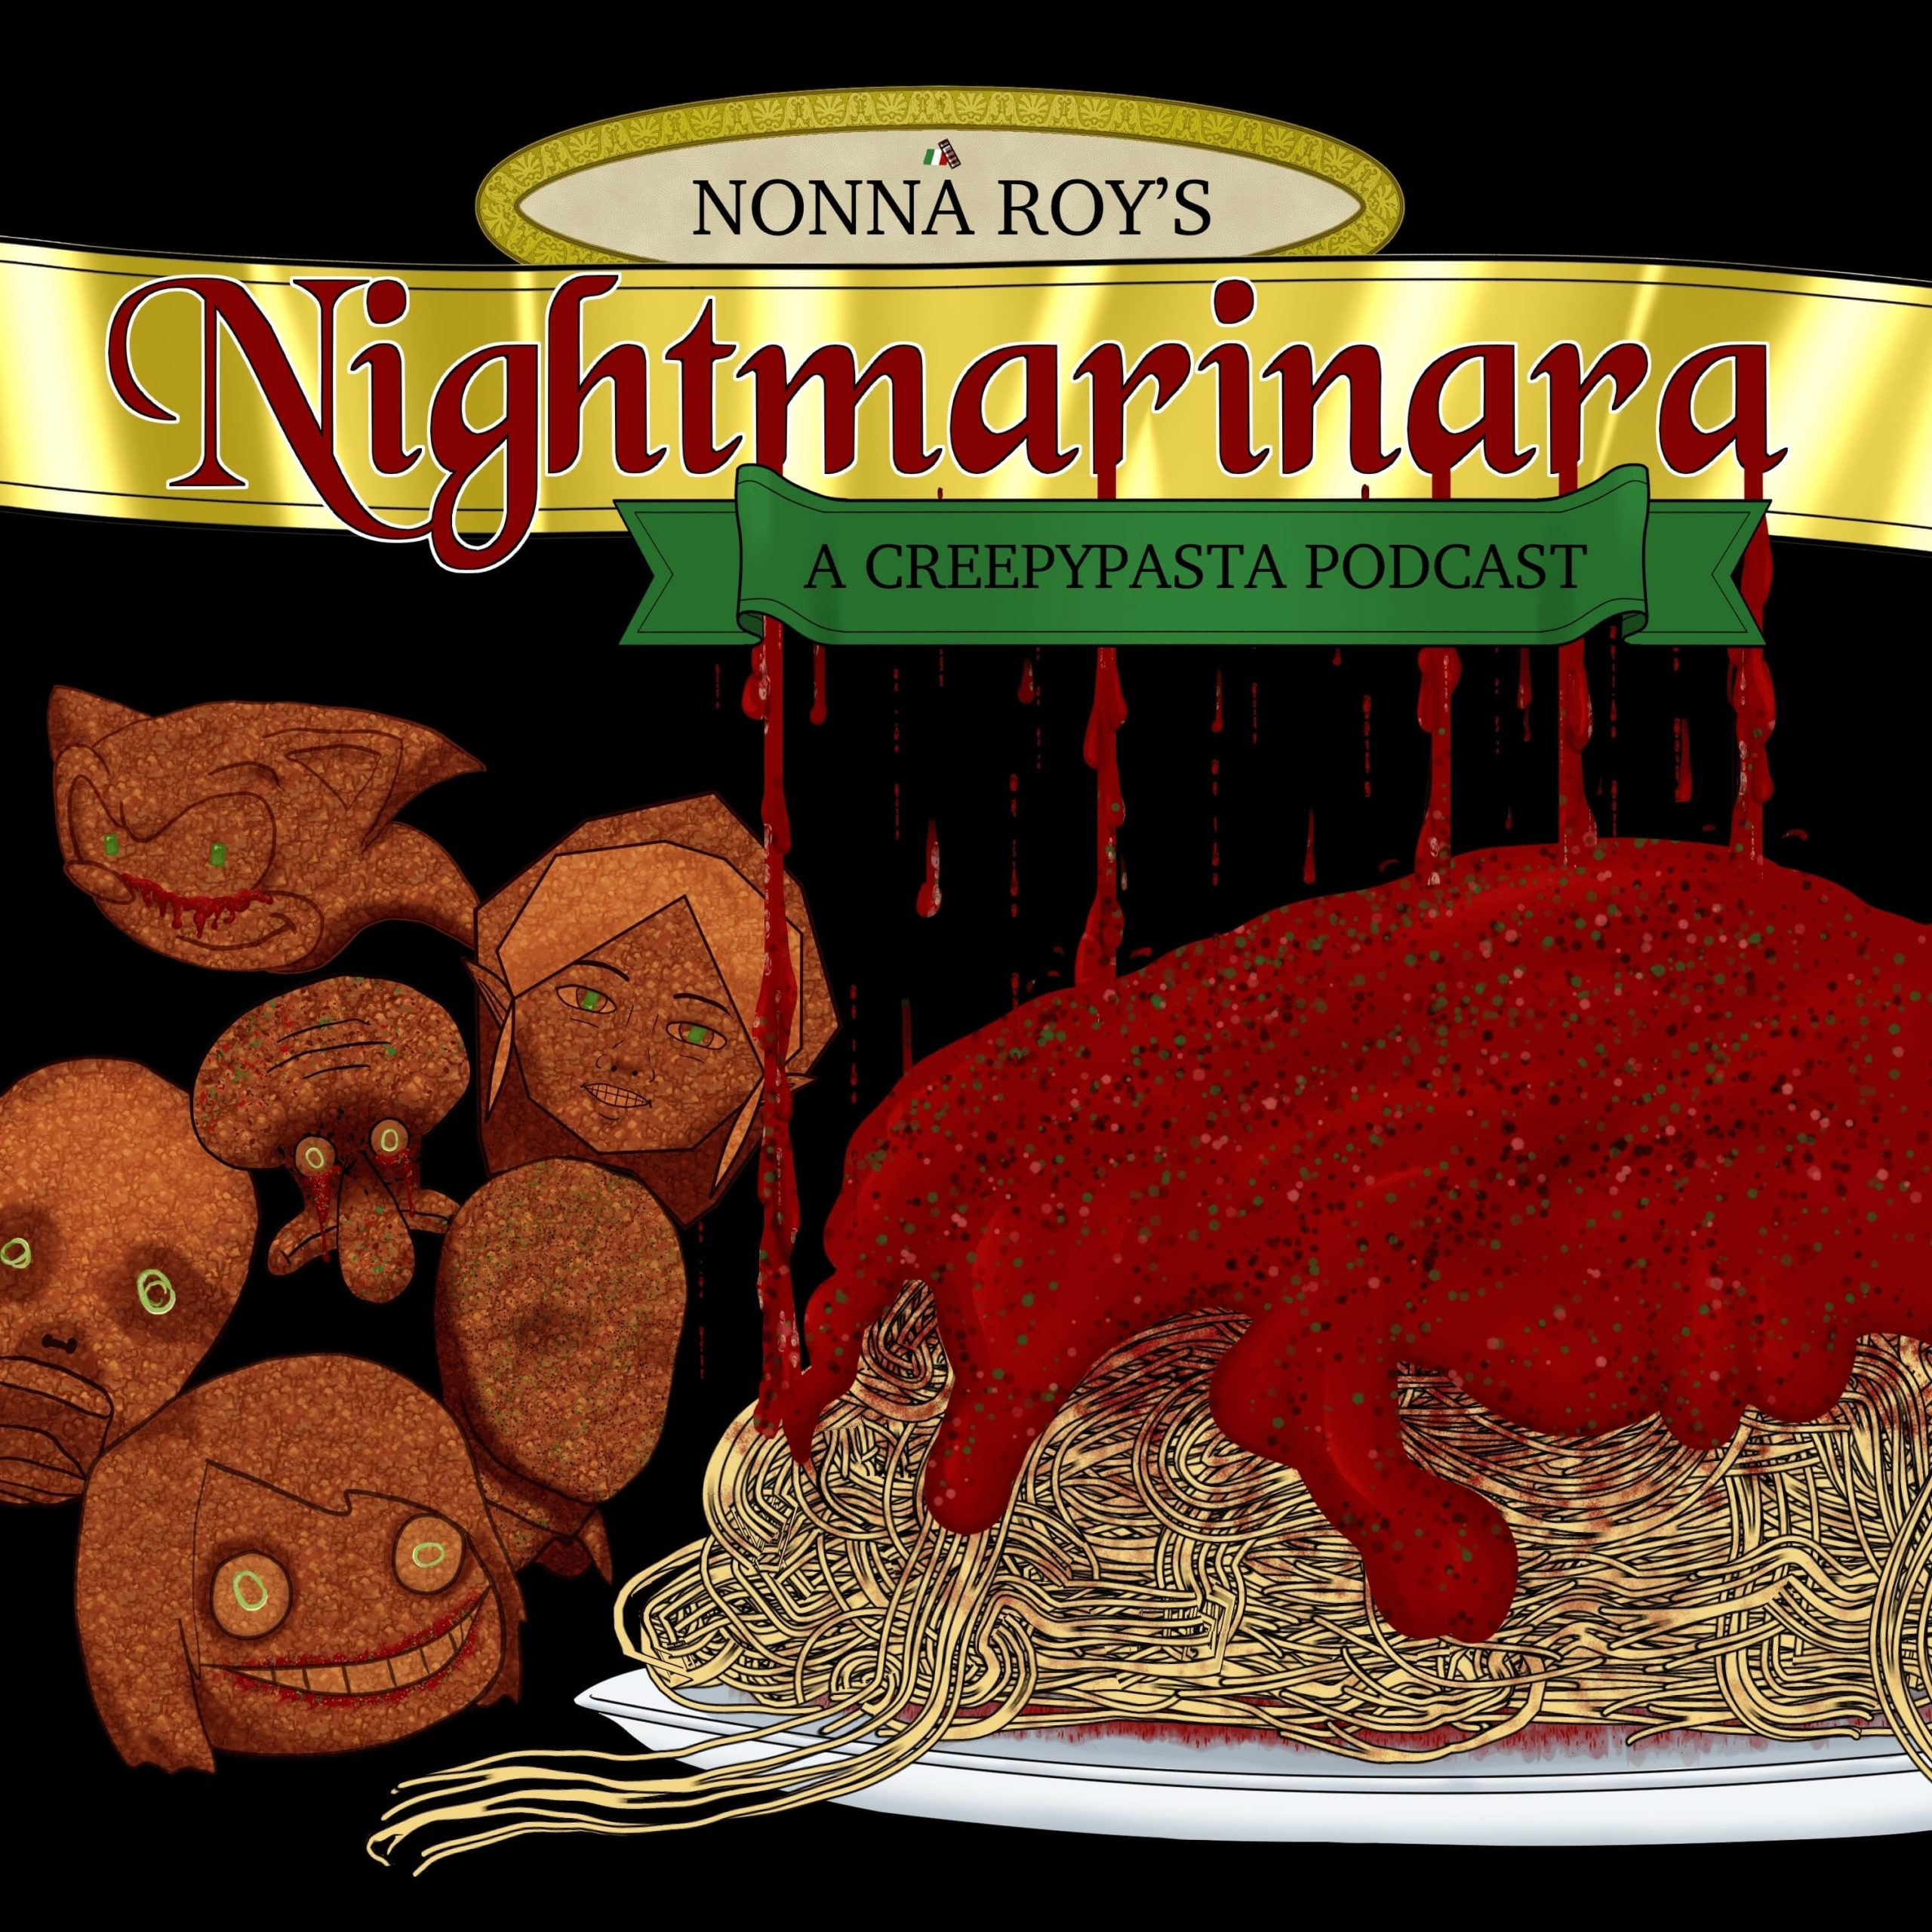 Nonna Roy's NIGHTMARINARA